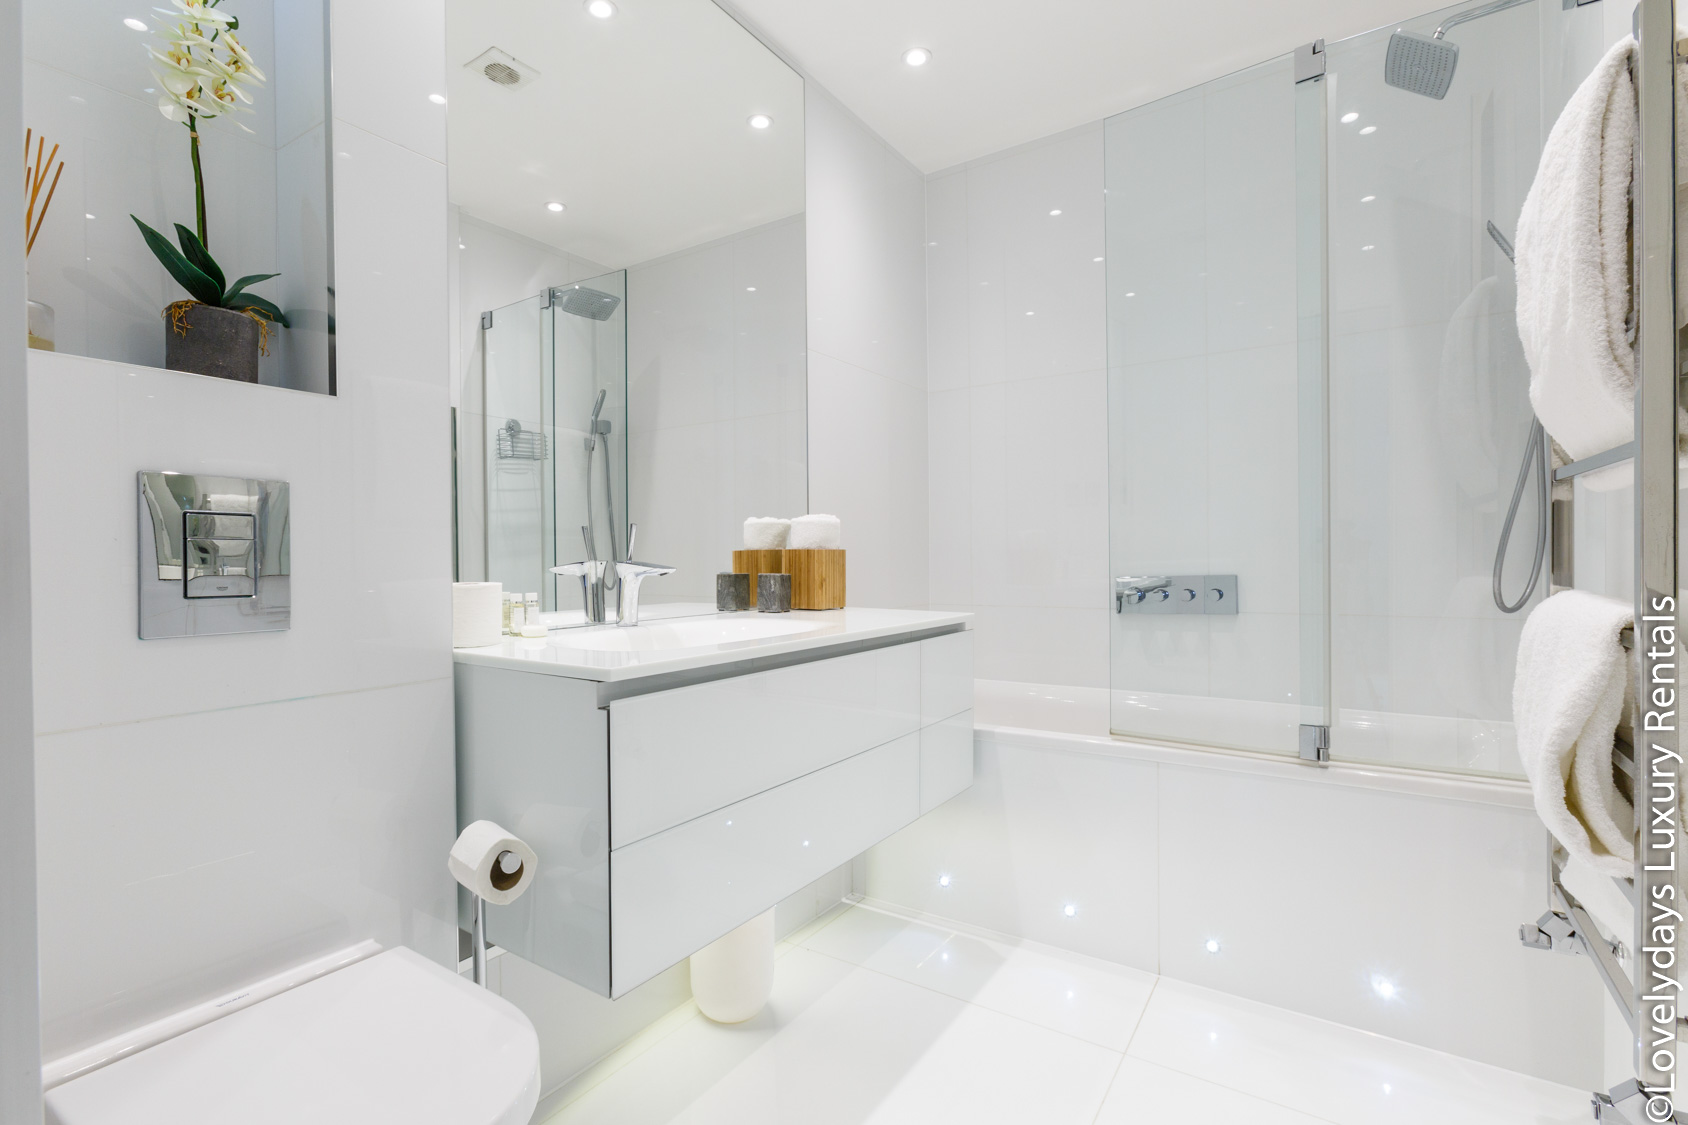 Lovelydays luxury service apartment rental - London - Covent Garden - Cockspur Street - Lovelysuite - 3 bedrooms - 2 bathrooms - Lovely shower - 4274247f5006 - Lovelydays